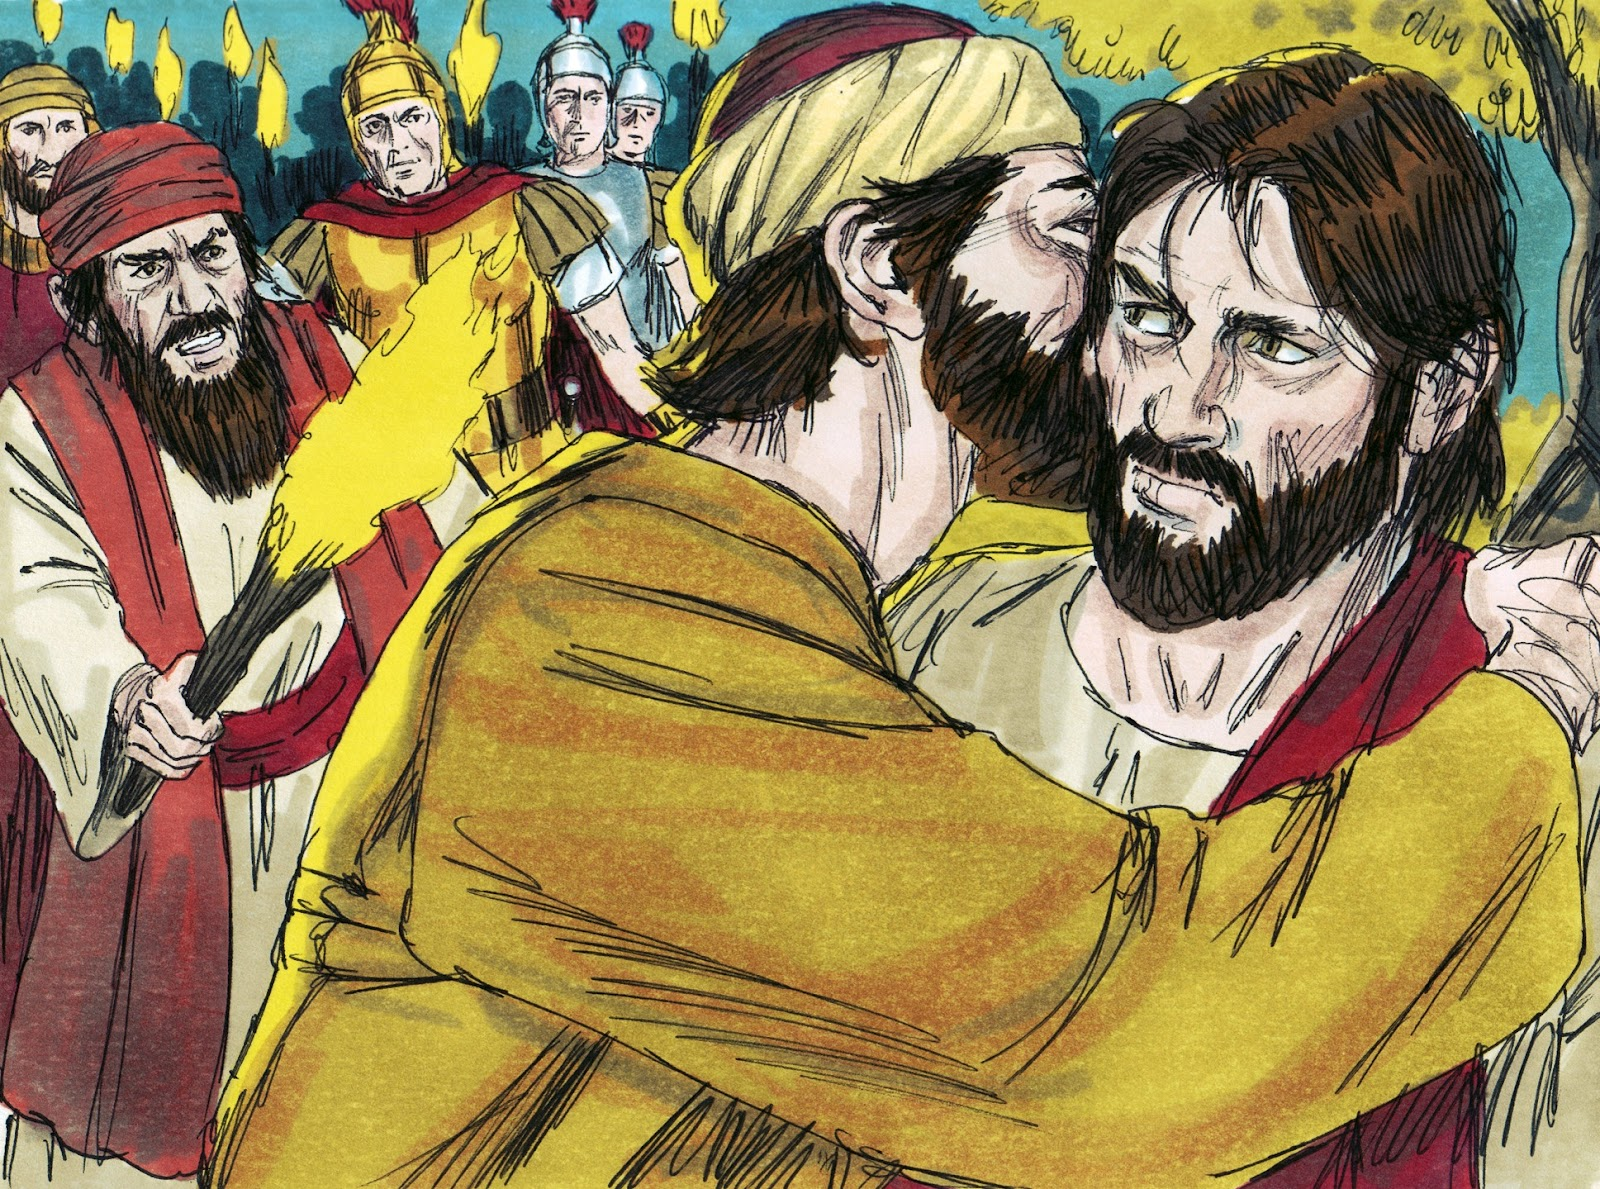 judas and jesus relationship with his father